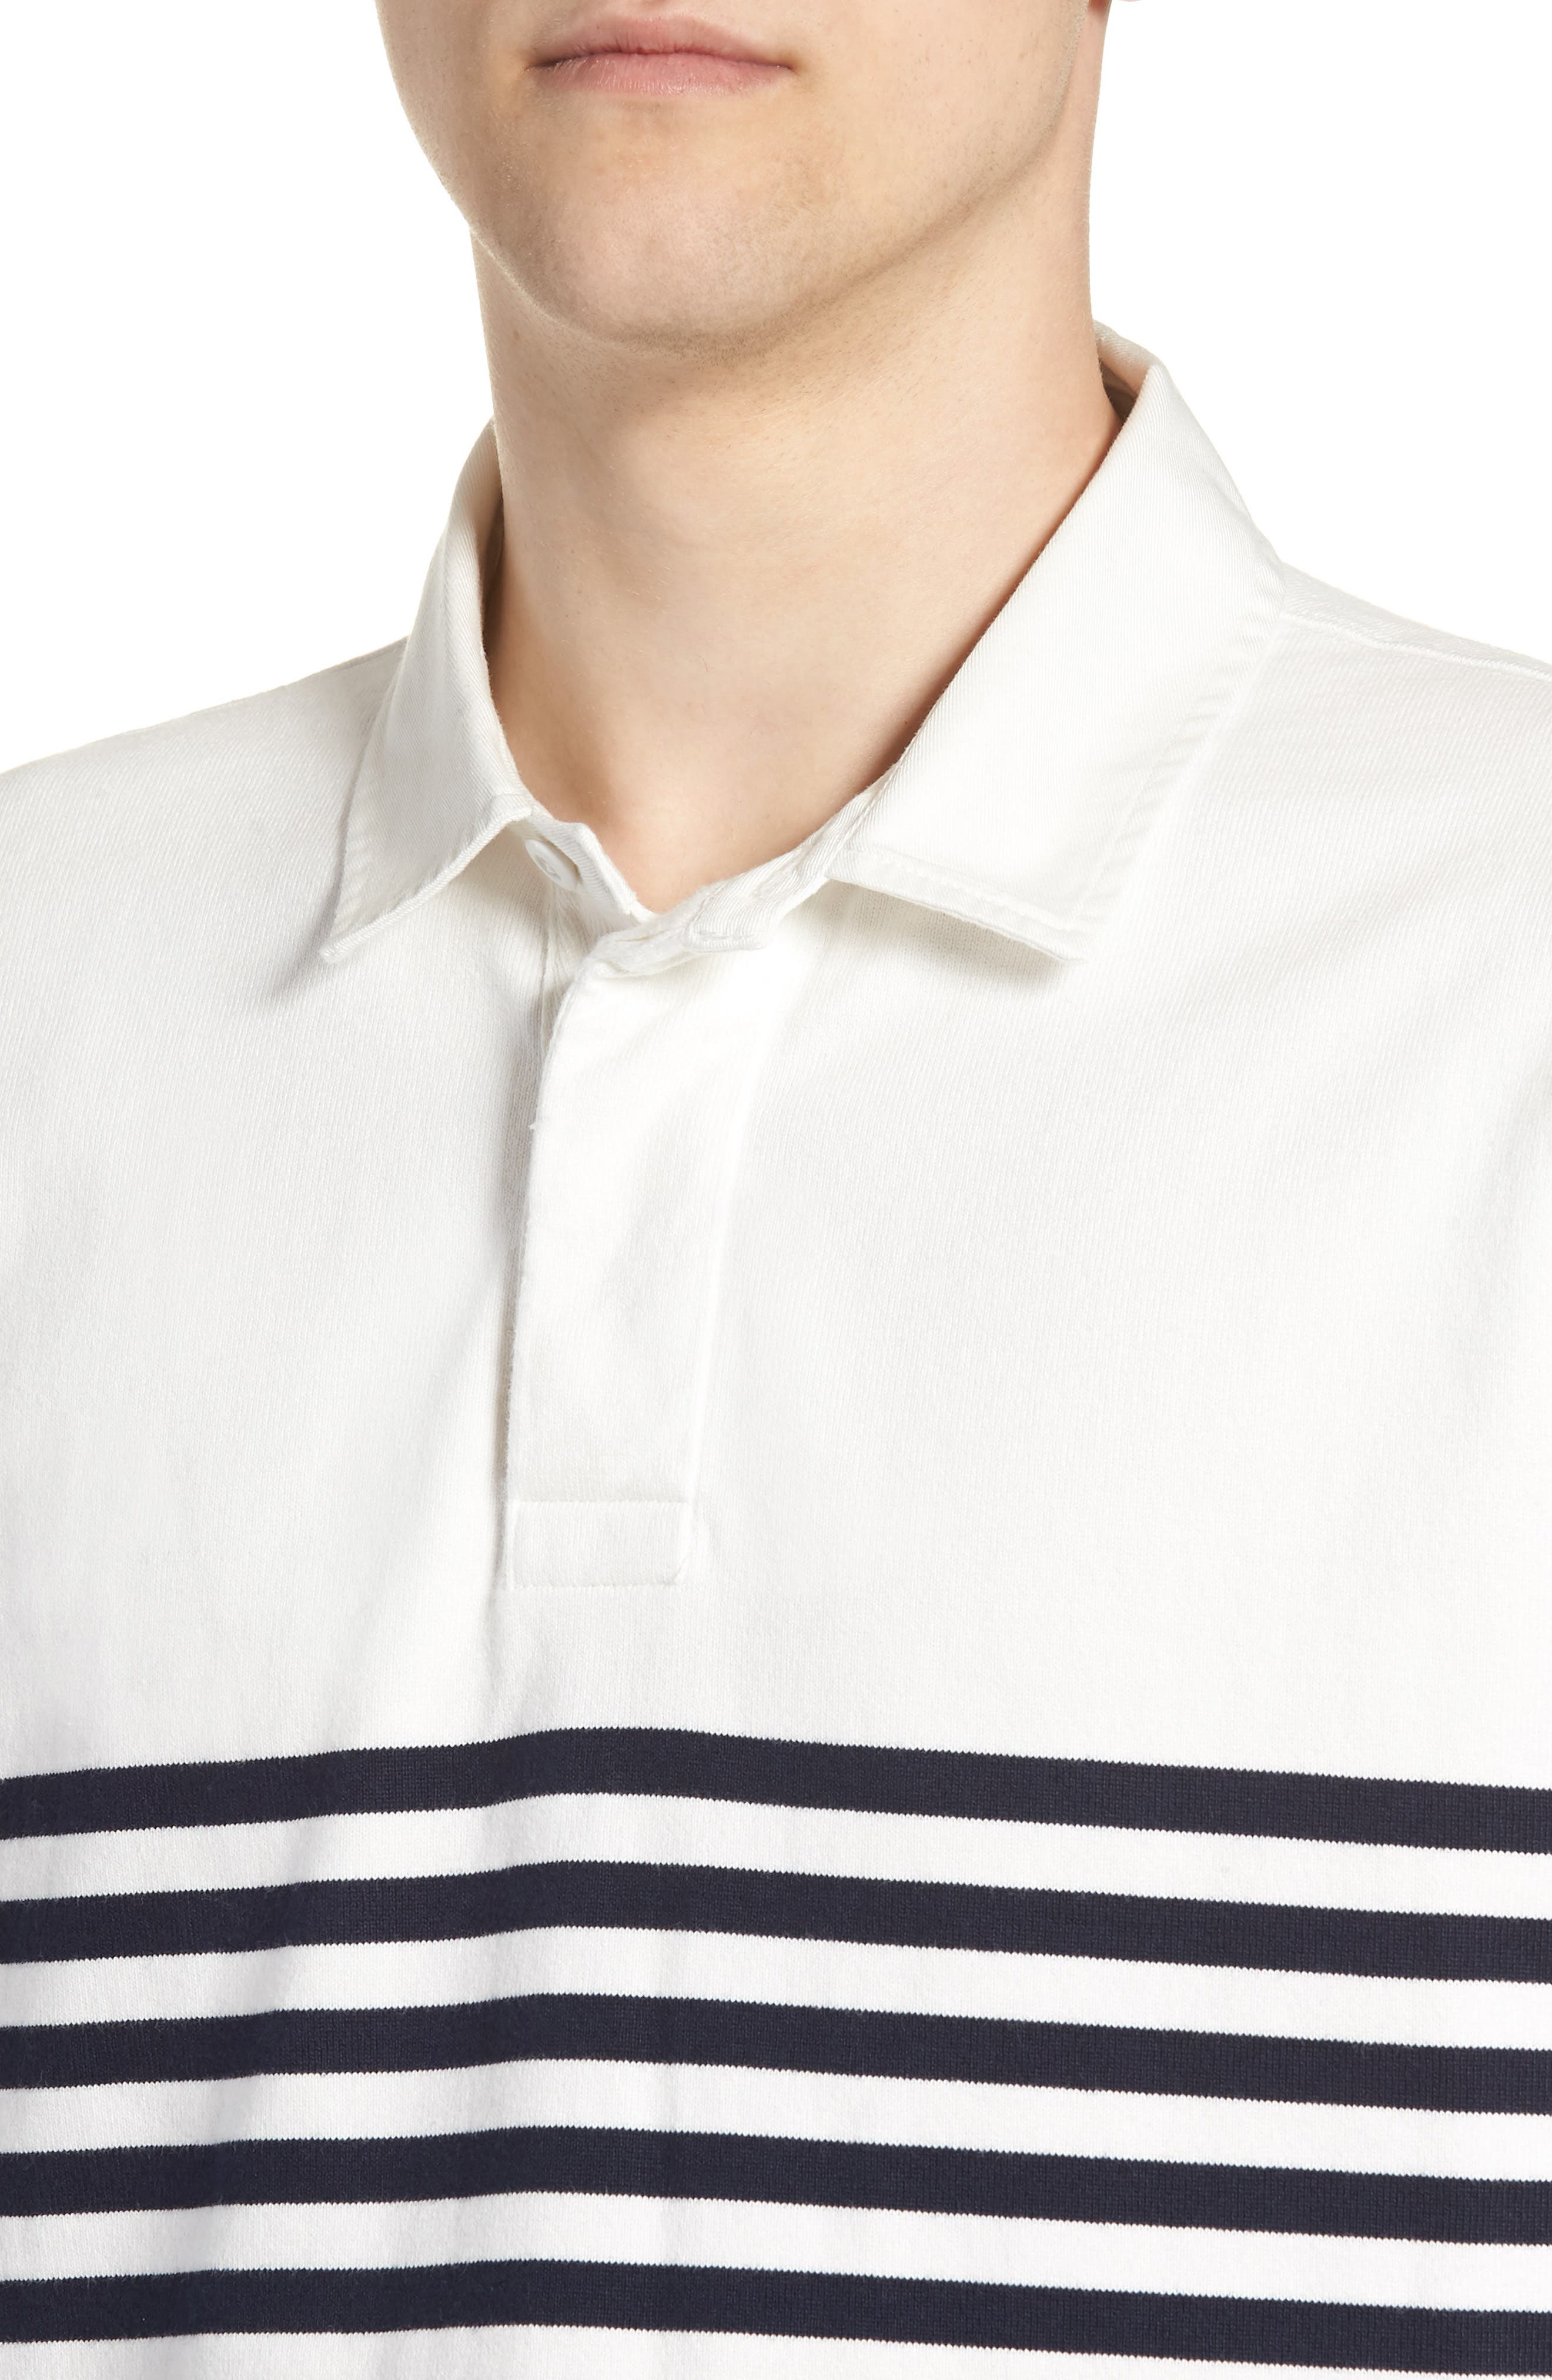 1984 Colorblock Stripe Rugby Shirt,                             Alternate thumbnail 4, color,                             400